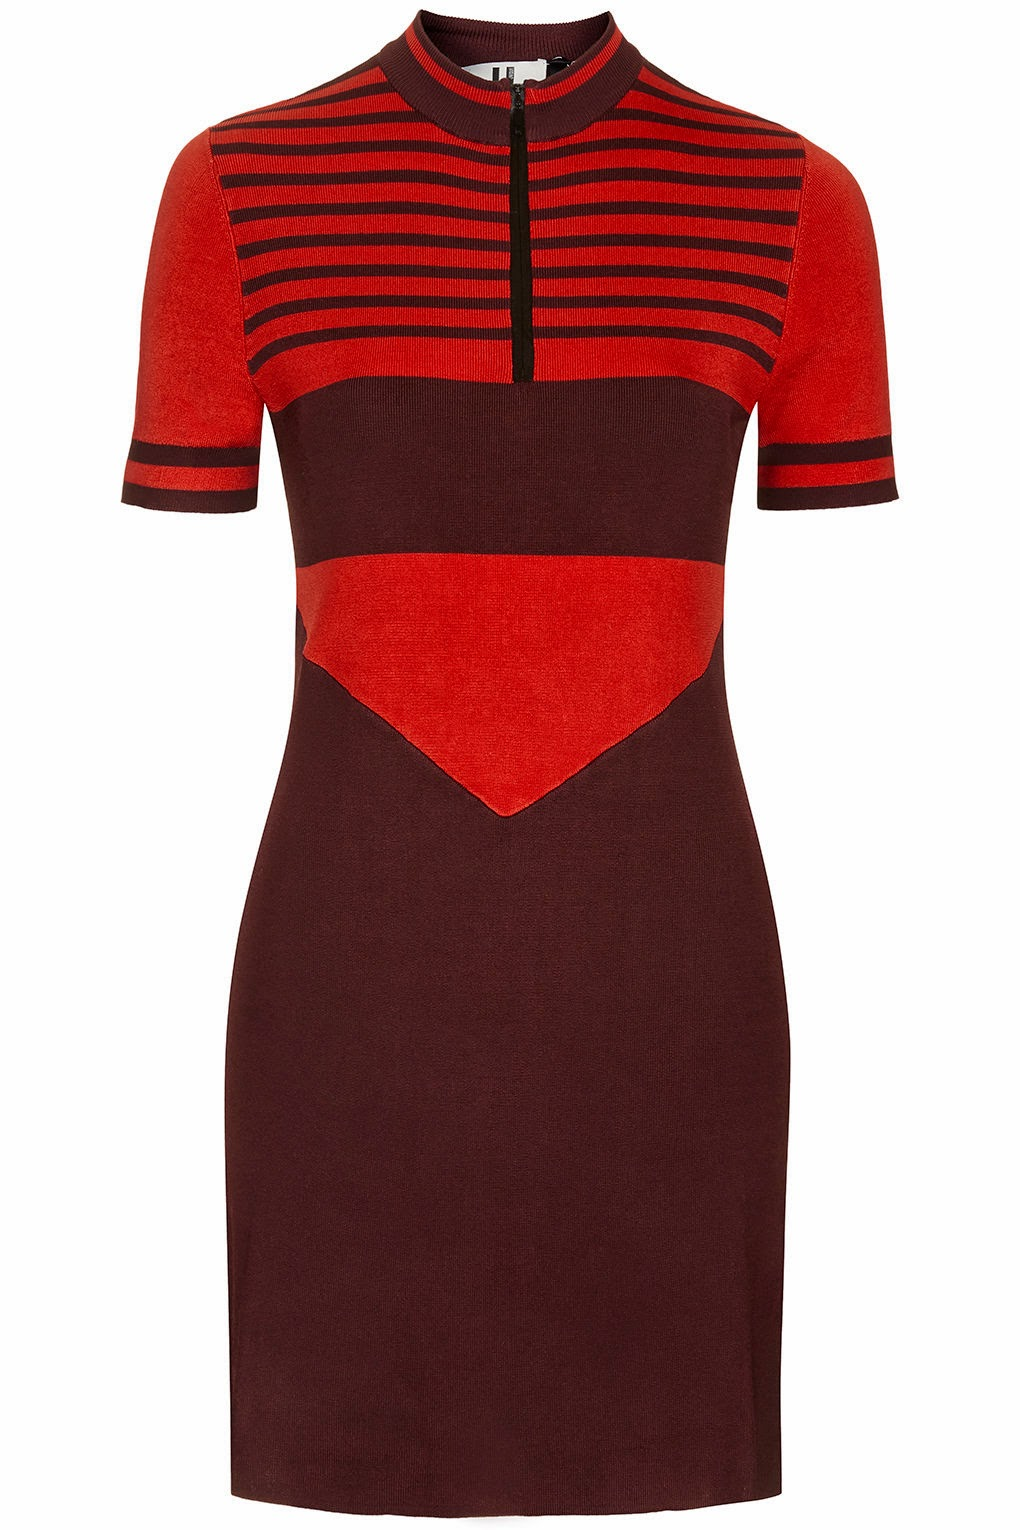 red striped dress topshop, red stripe knitted dress,